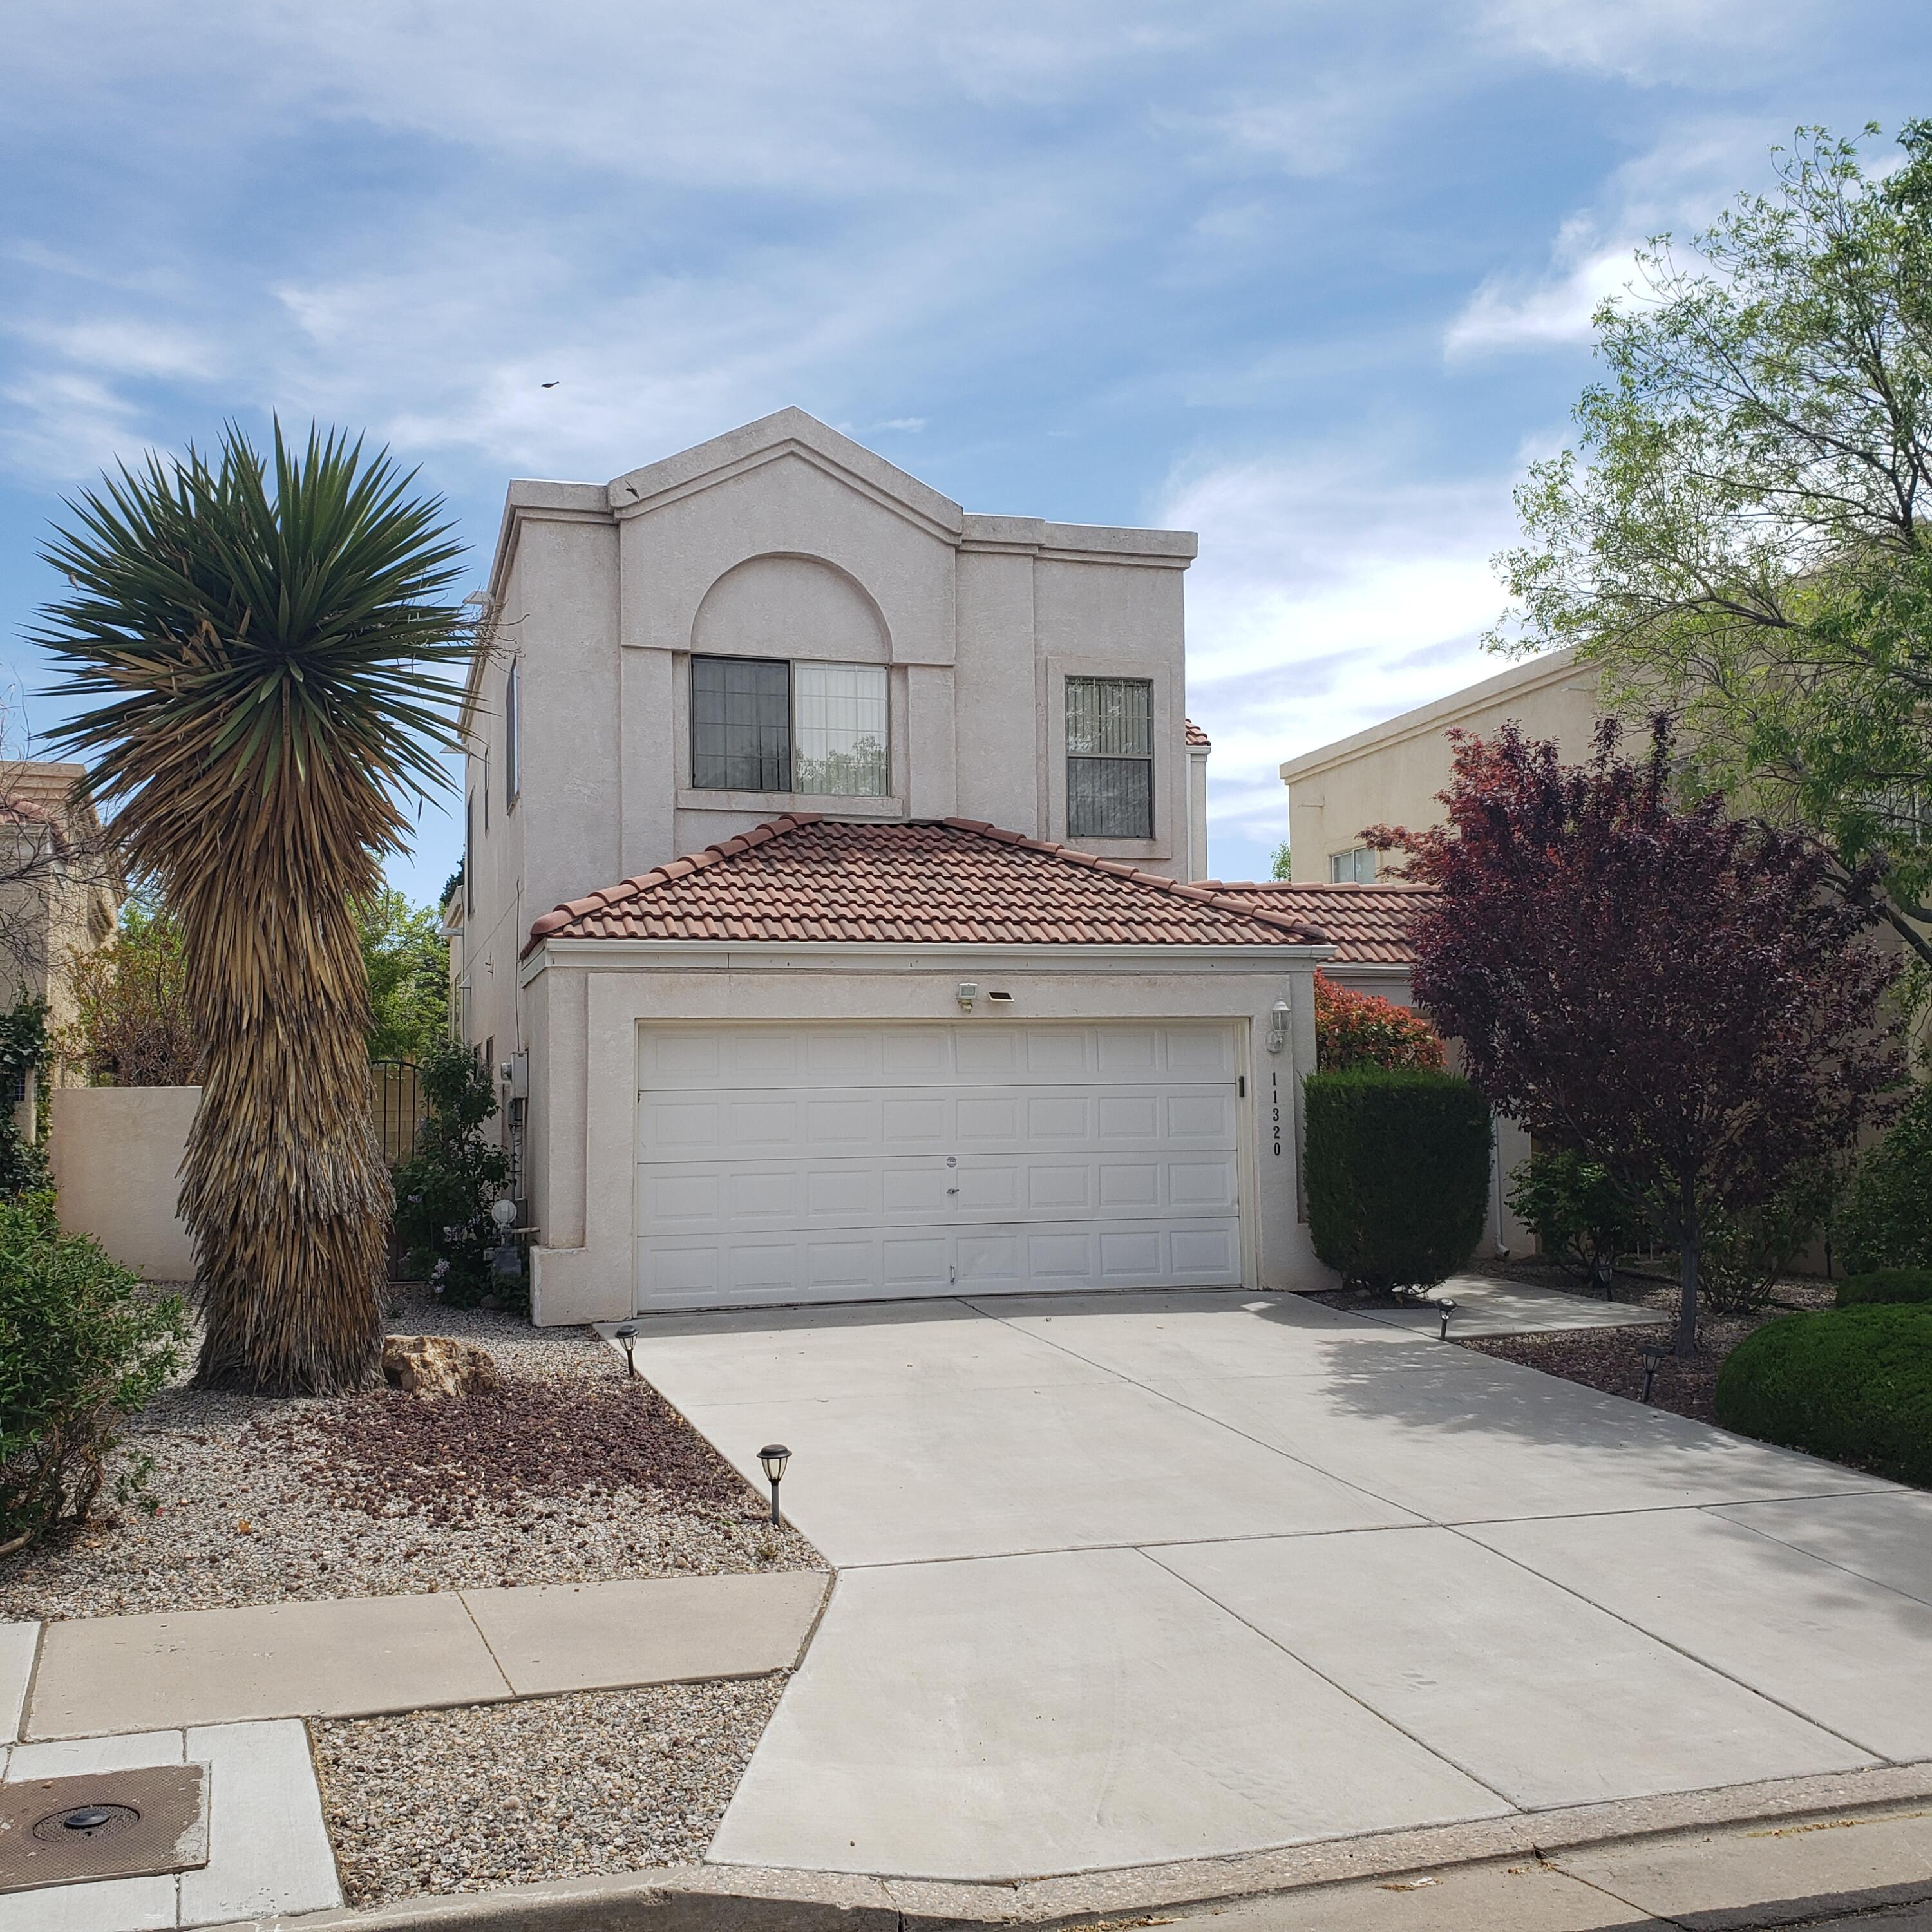 This well-kept 2-story home is in a great location!    It has friendly, indoor / outdoor living with privacy.  There are  3 bedrooms, 2.5 baths, 2 living areas, and an office.  Mountain views of the Sandias from the bedrooms upstairs are good. The family room is well-lit with natural light from the bank of south-facing windows.  The floorplan has a good combination of community space and privacy thanks to the open kitchen-greatroom, multiple living rooms, and separate office.